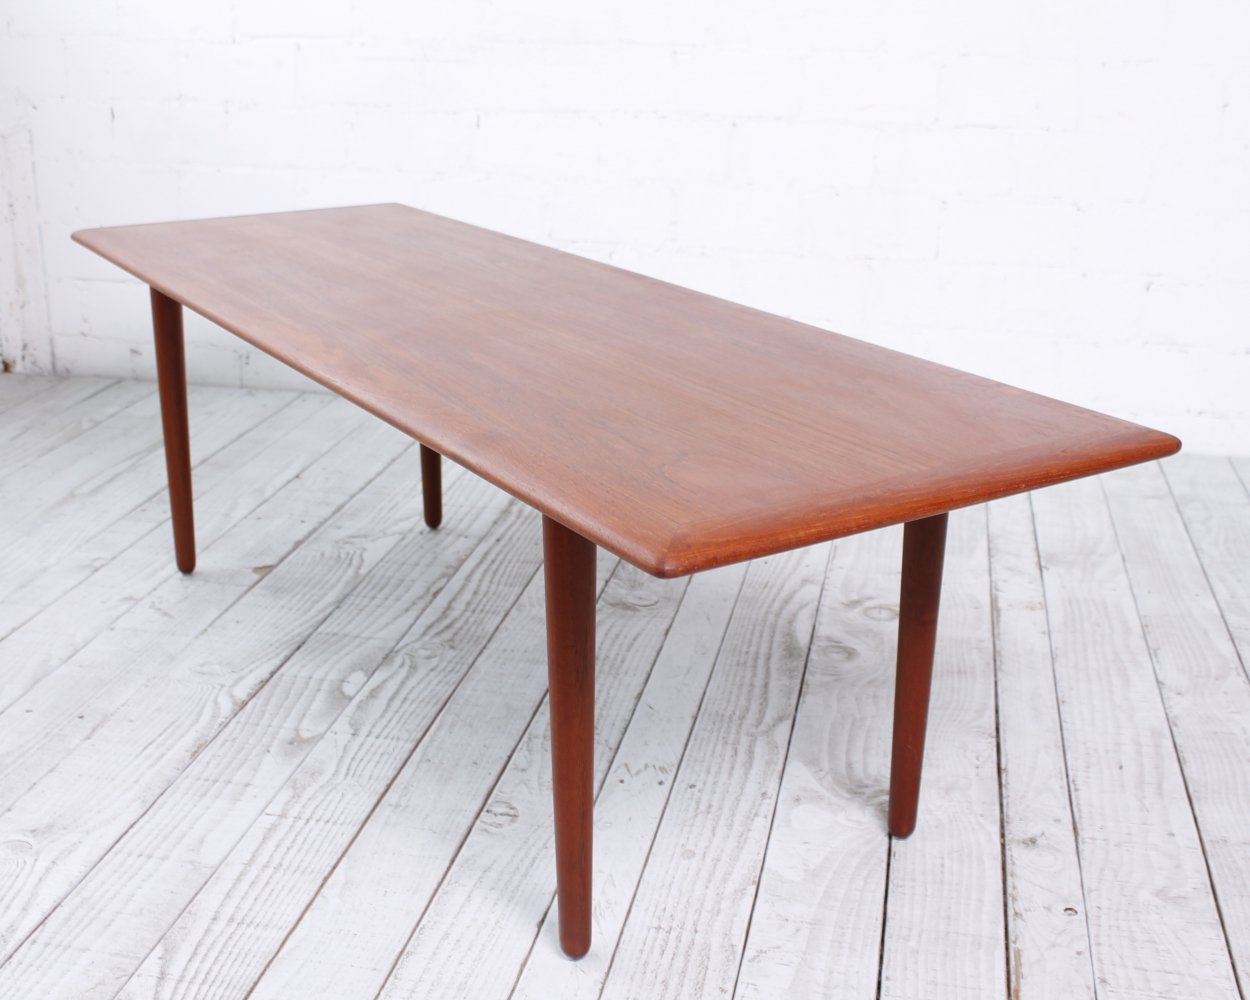 Surfboard Coffee table by Poul Volther for Frem Røjle, 1960s